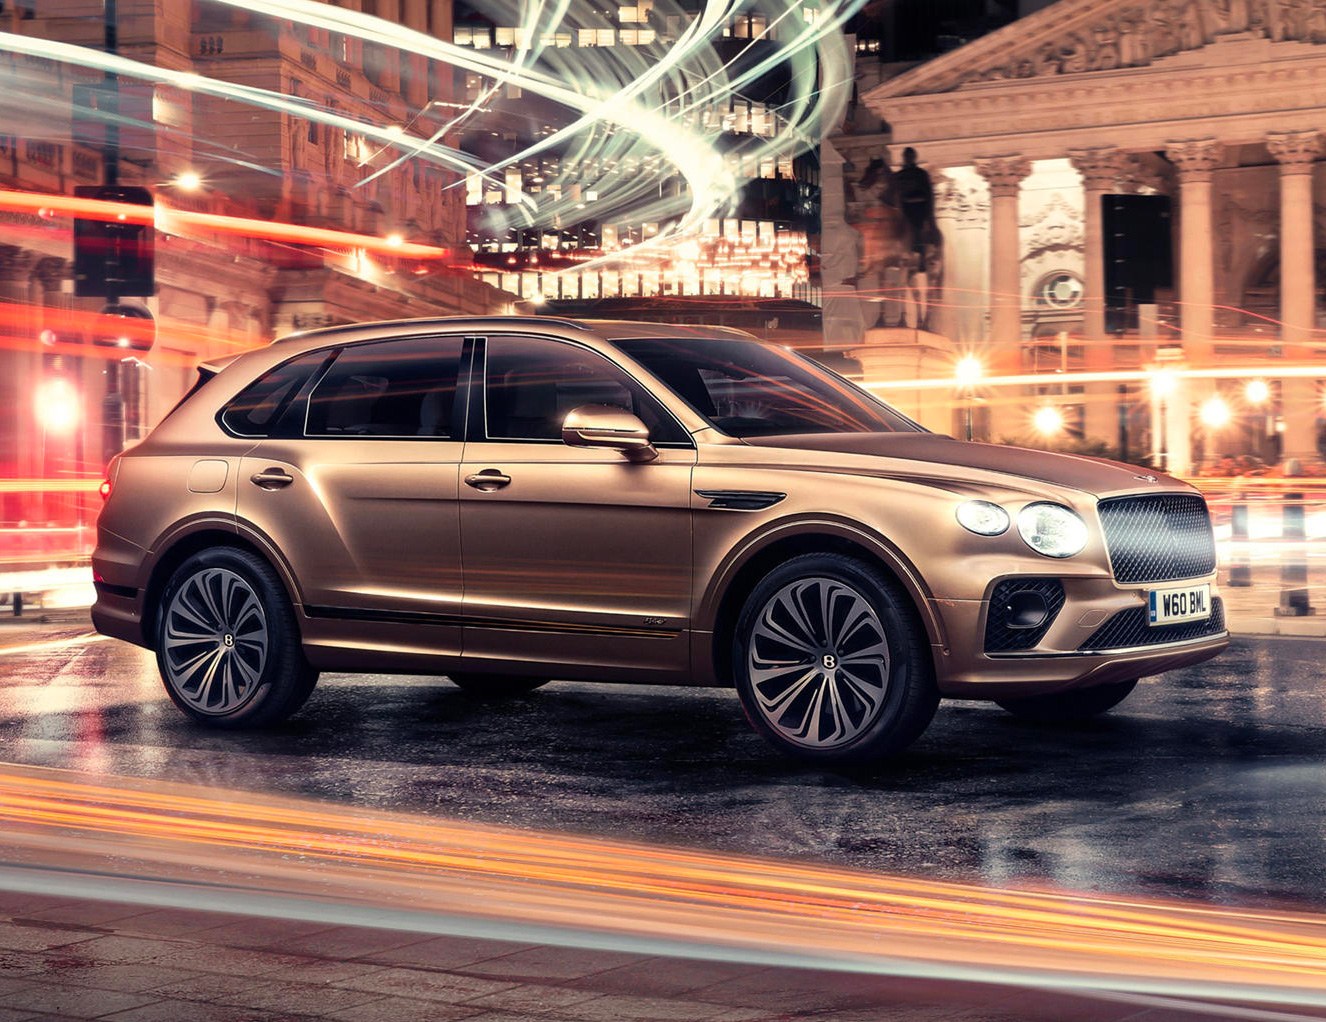 Bentley Rolls Out 2021 Bentayga Hybrid at werd.com